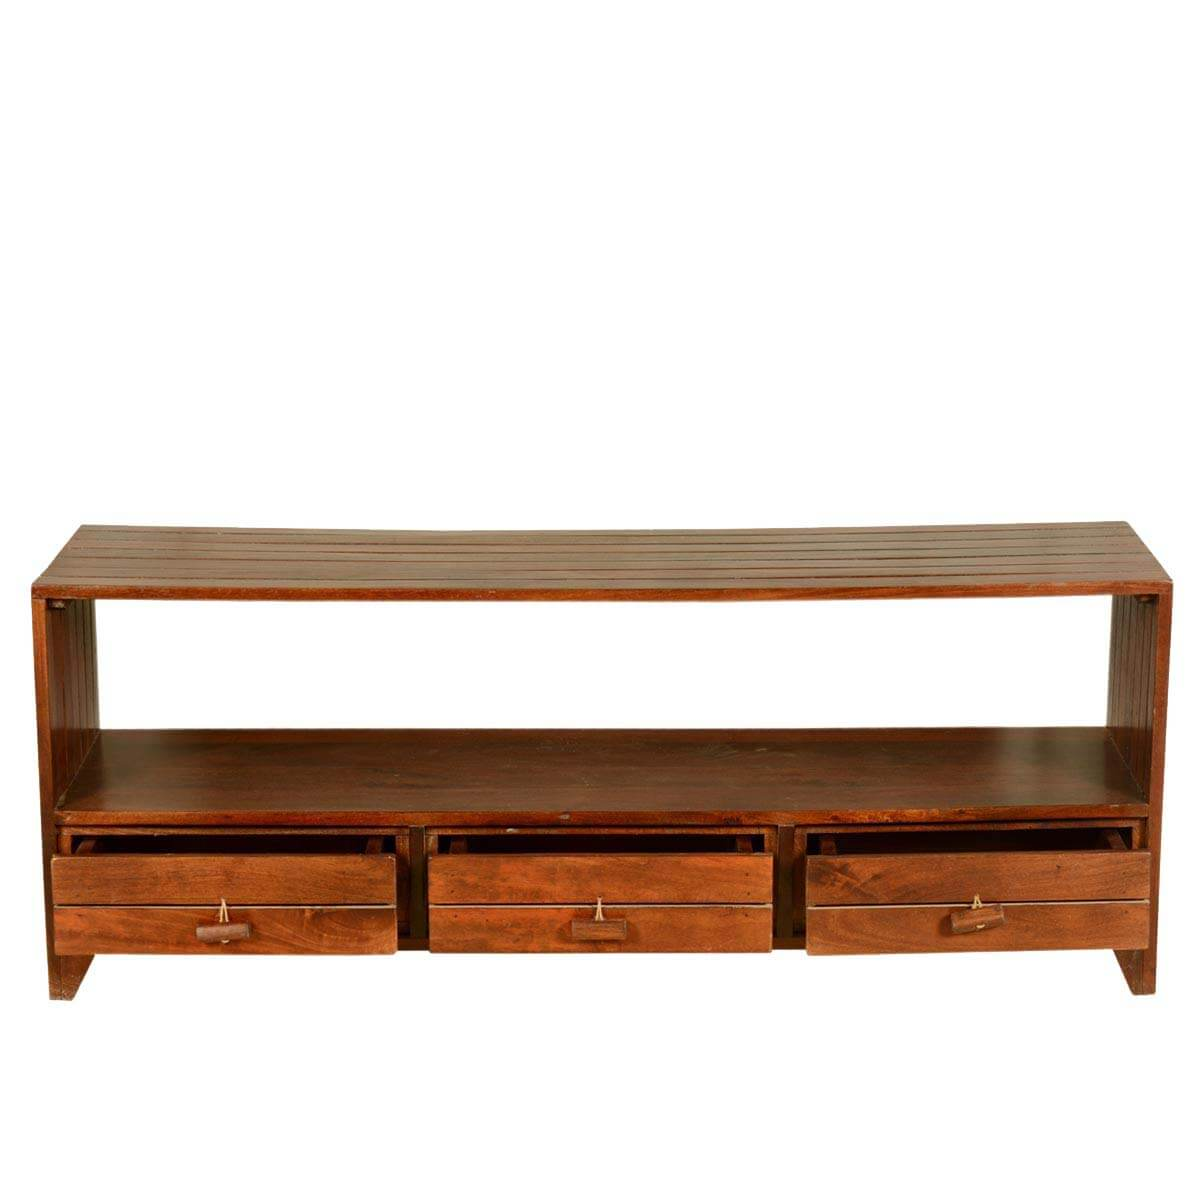 Scantic parallel lines solid teak wood drawer tv stand